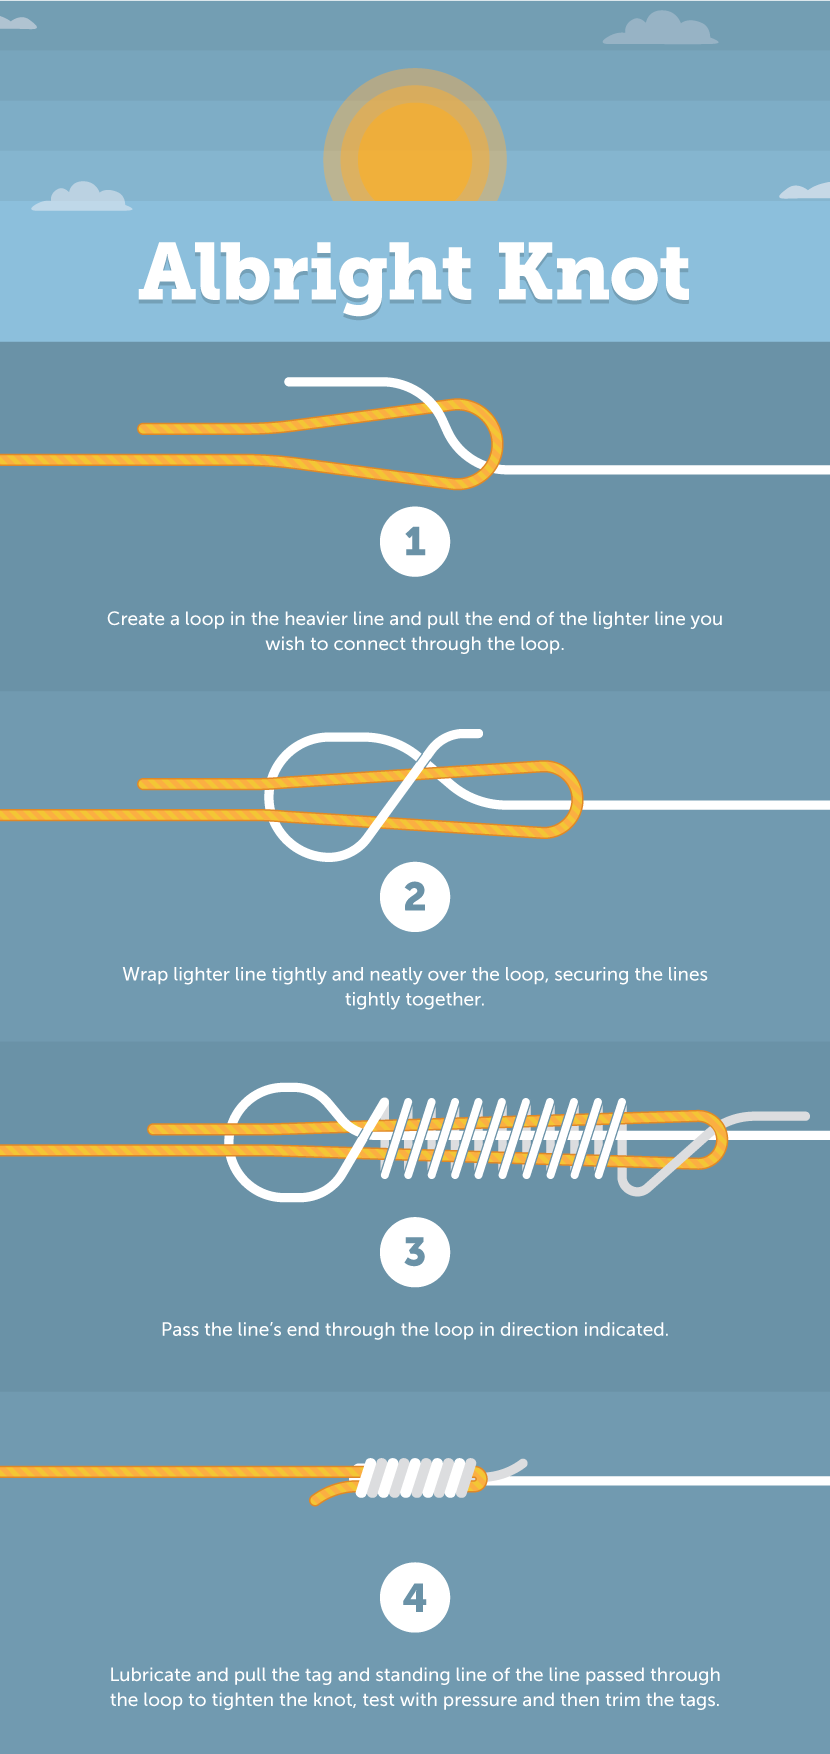 Tying the knot fishings critical connections fish fly fishing albright knot fishing knot encyclopedia pooptronica Images